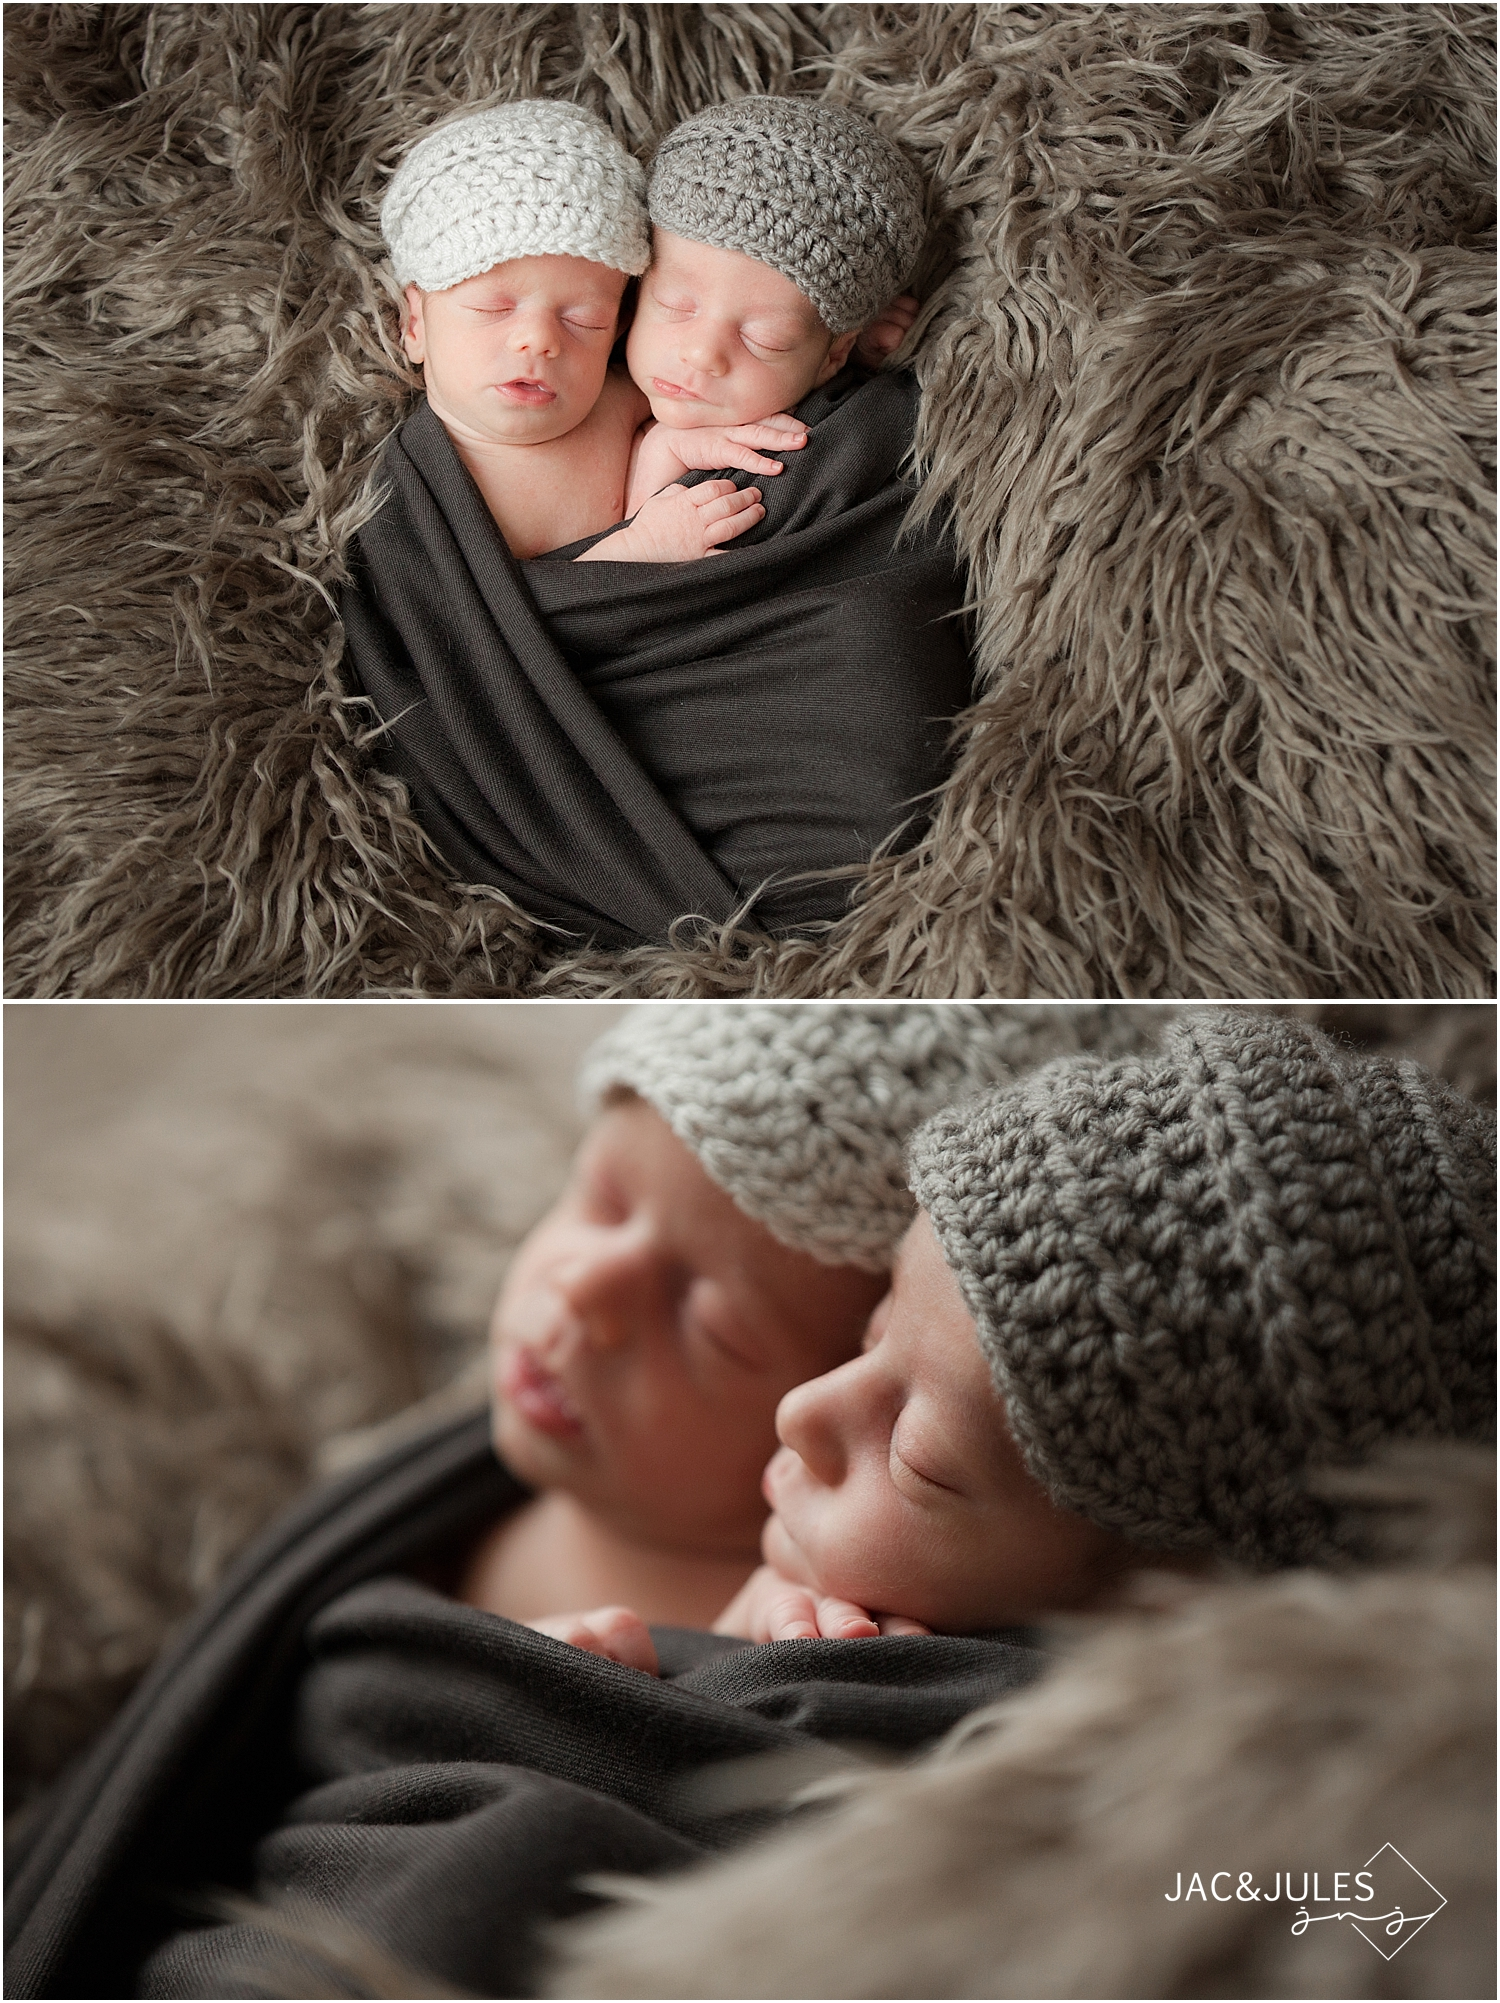 jacnjules photographs newborn twin boys in their home in toms river, nj